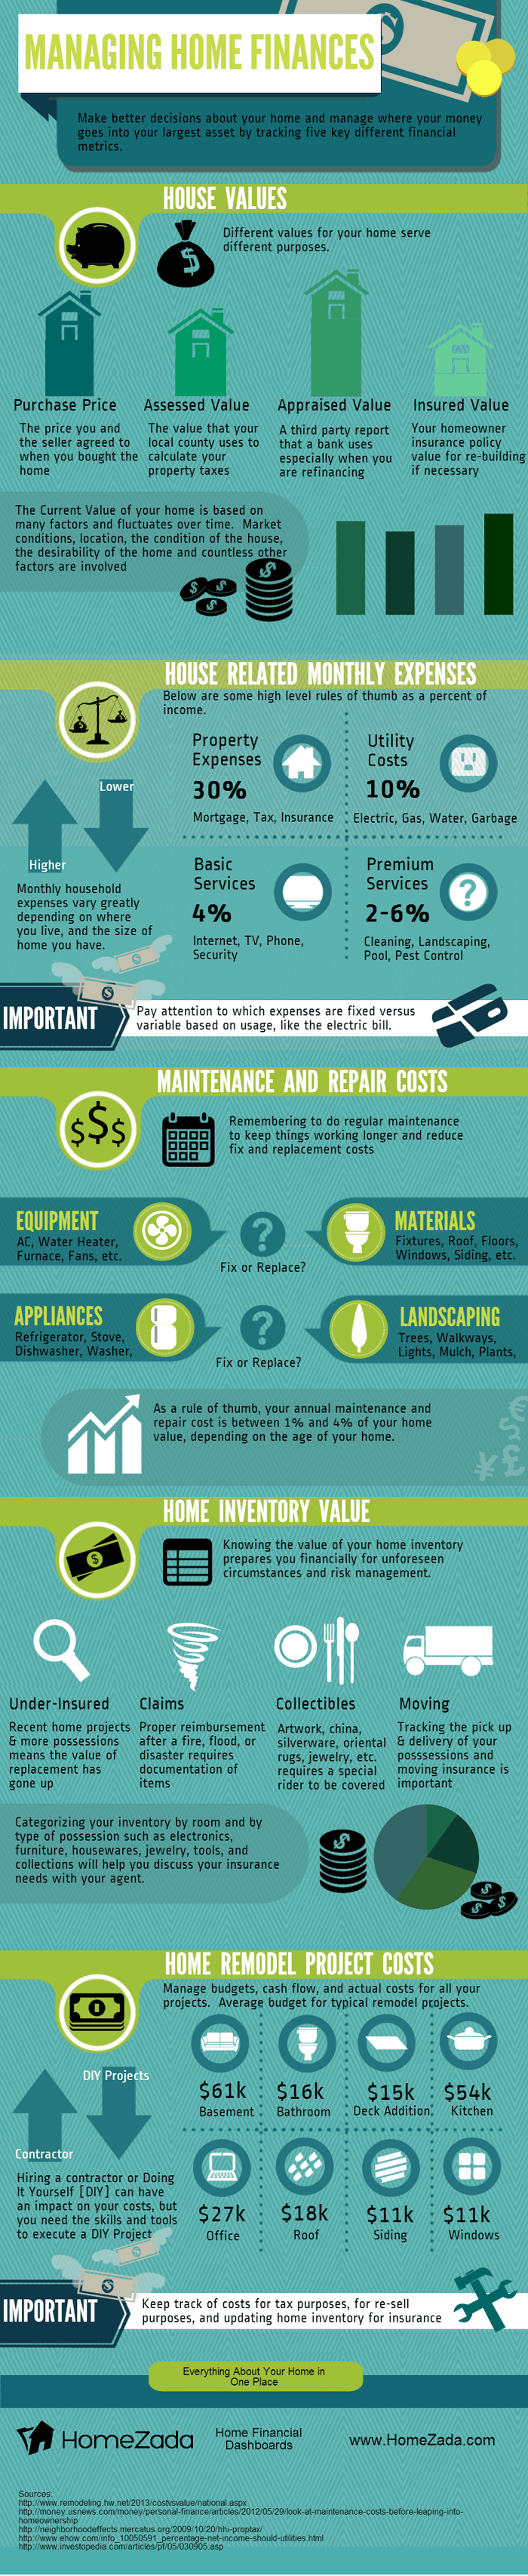 Managing Home Finances infographic